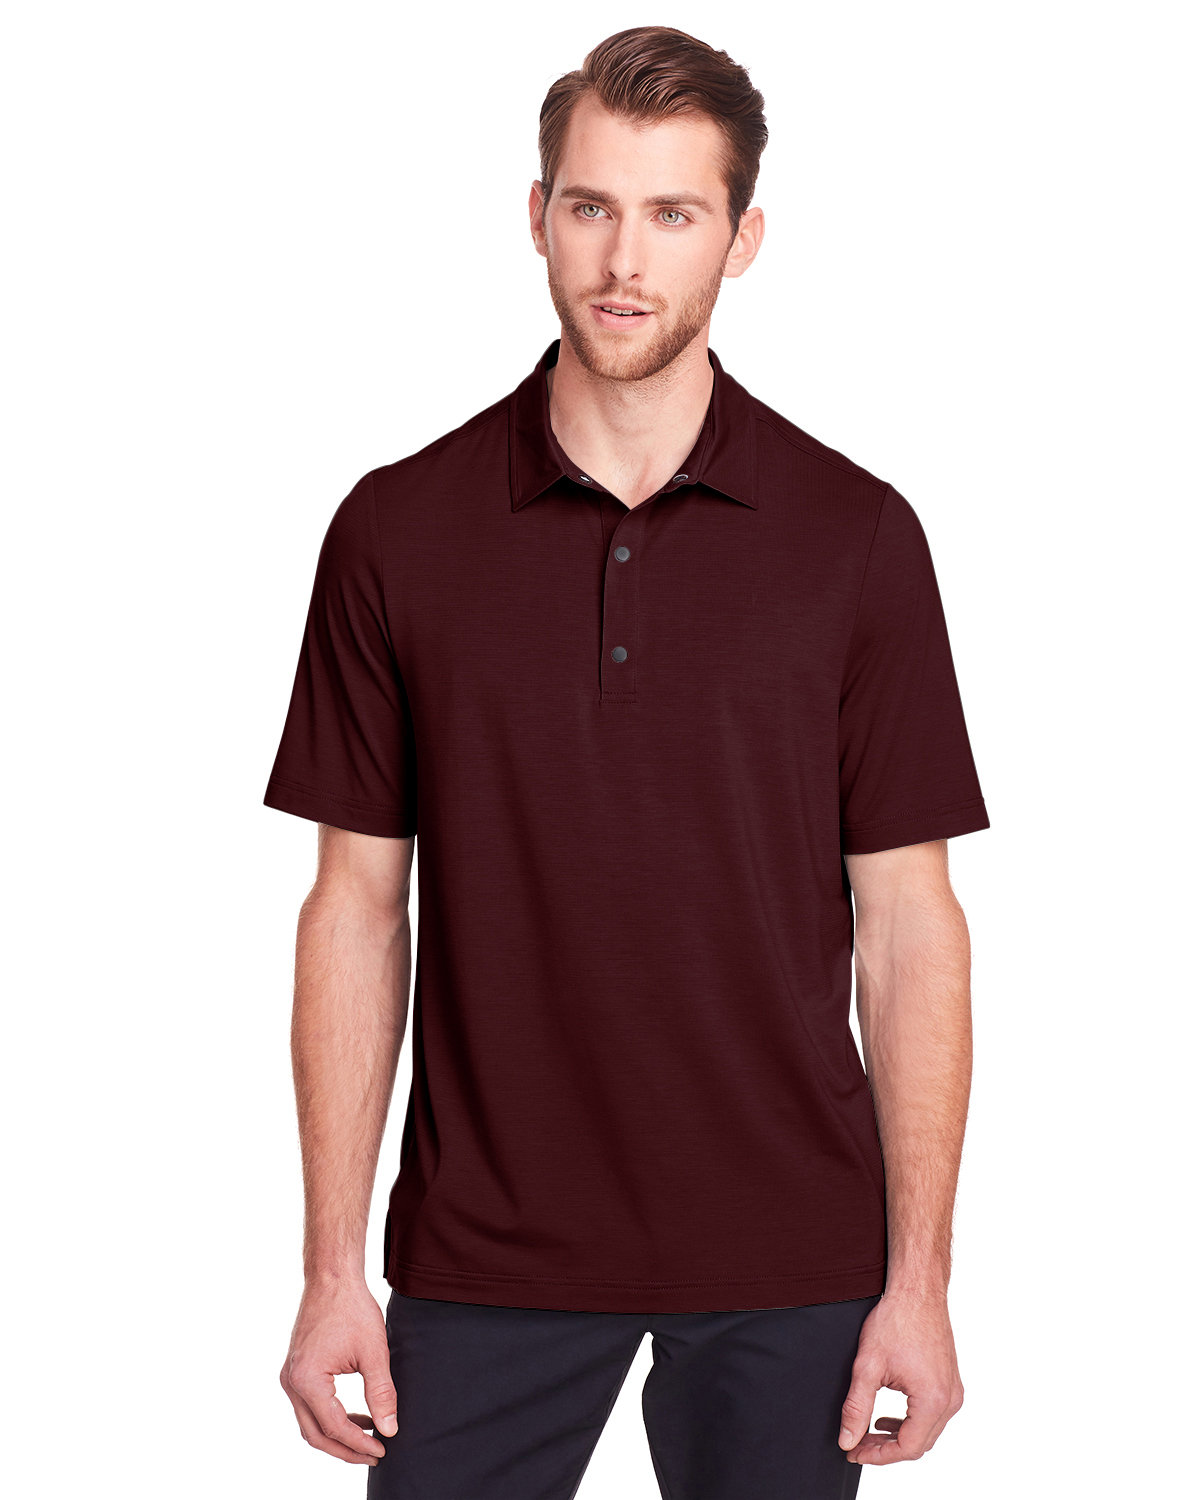 North End Men's Jaq Snap-Up Stretch Performance Polo BURGUNDY